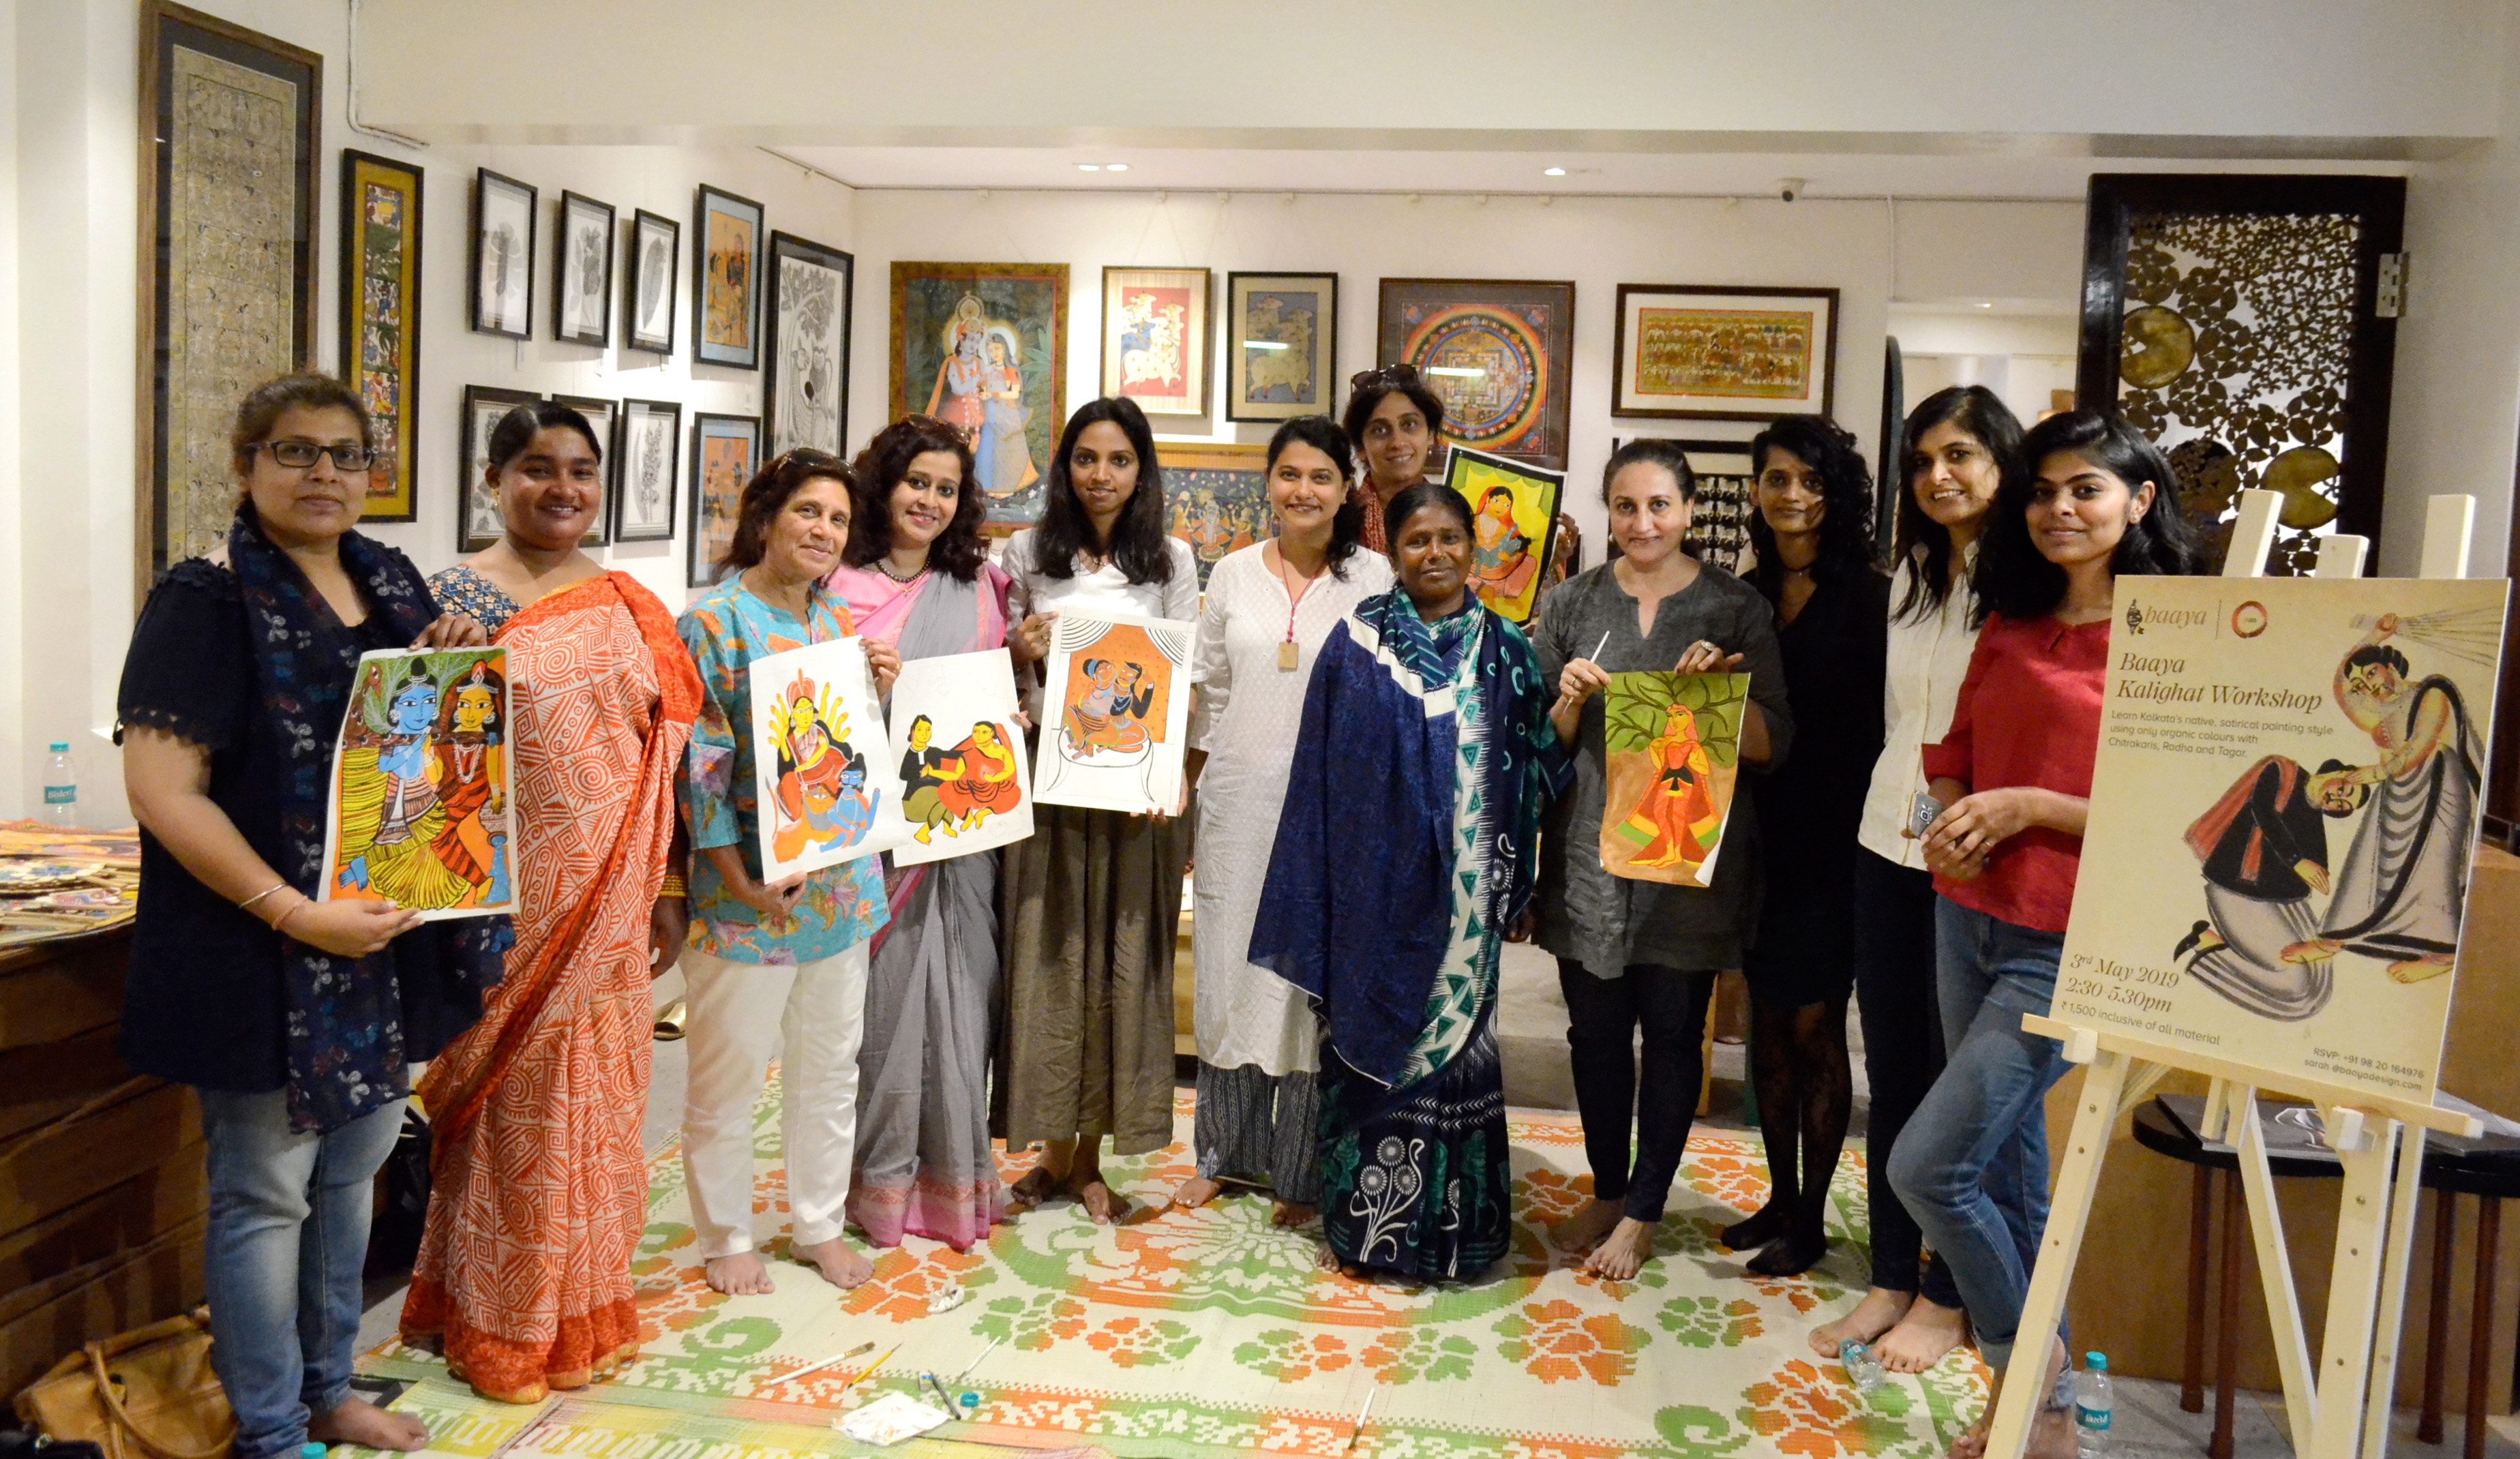 The participants pose with a few near complete masterpieces.